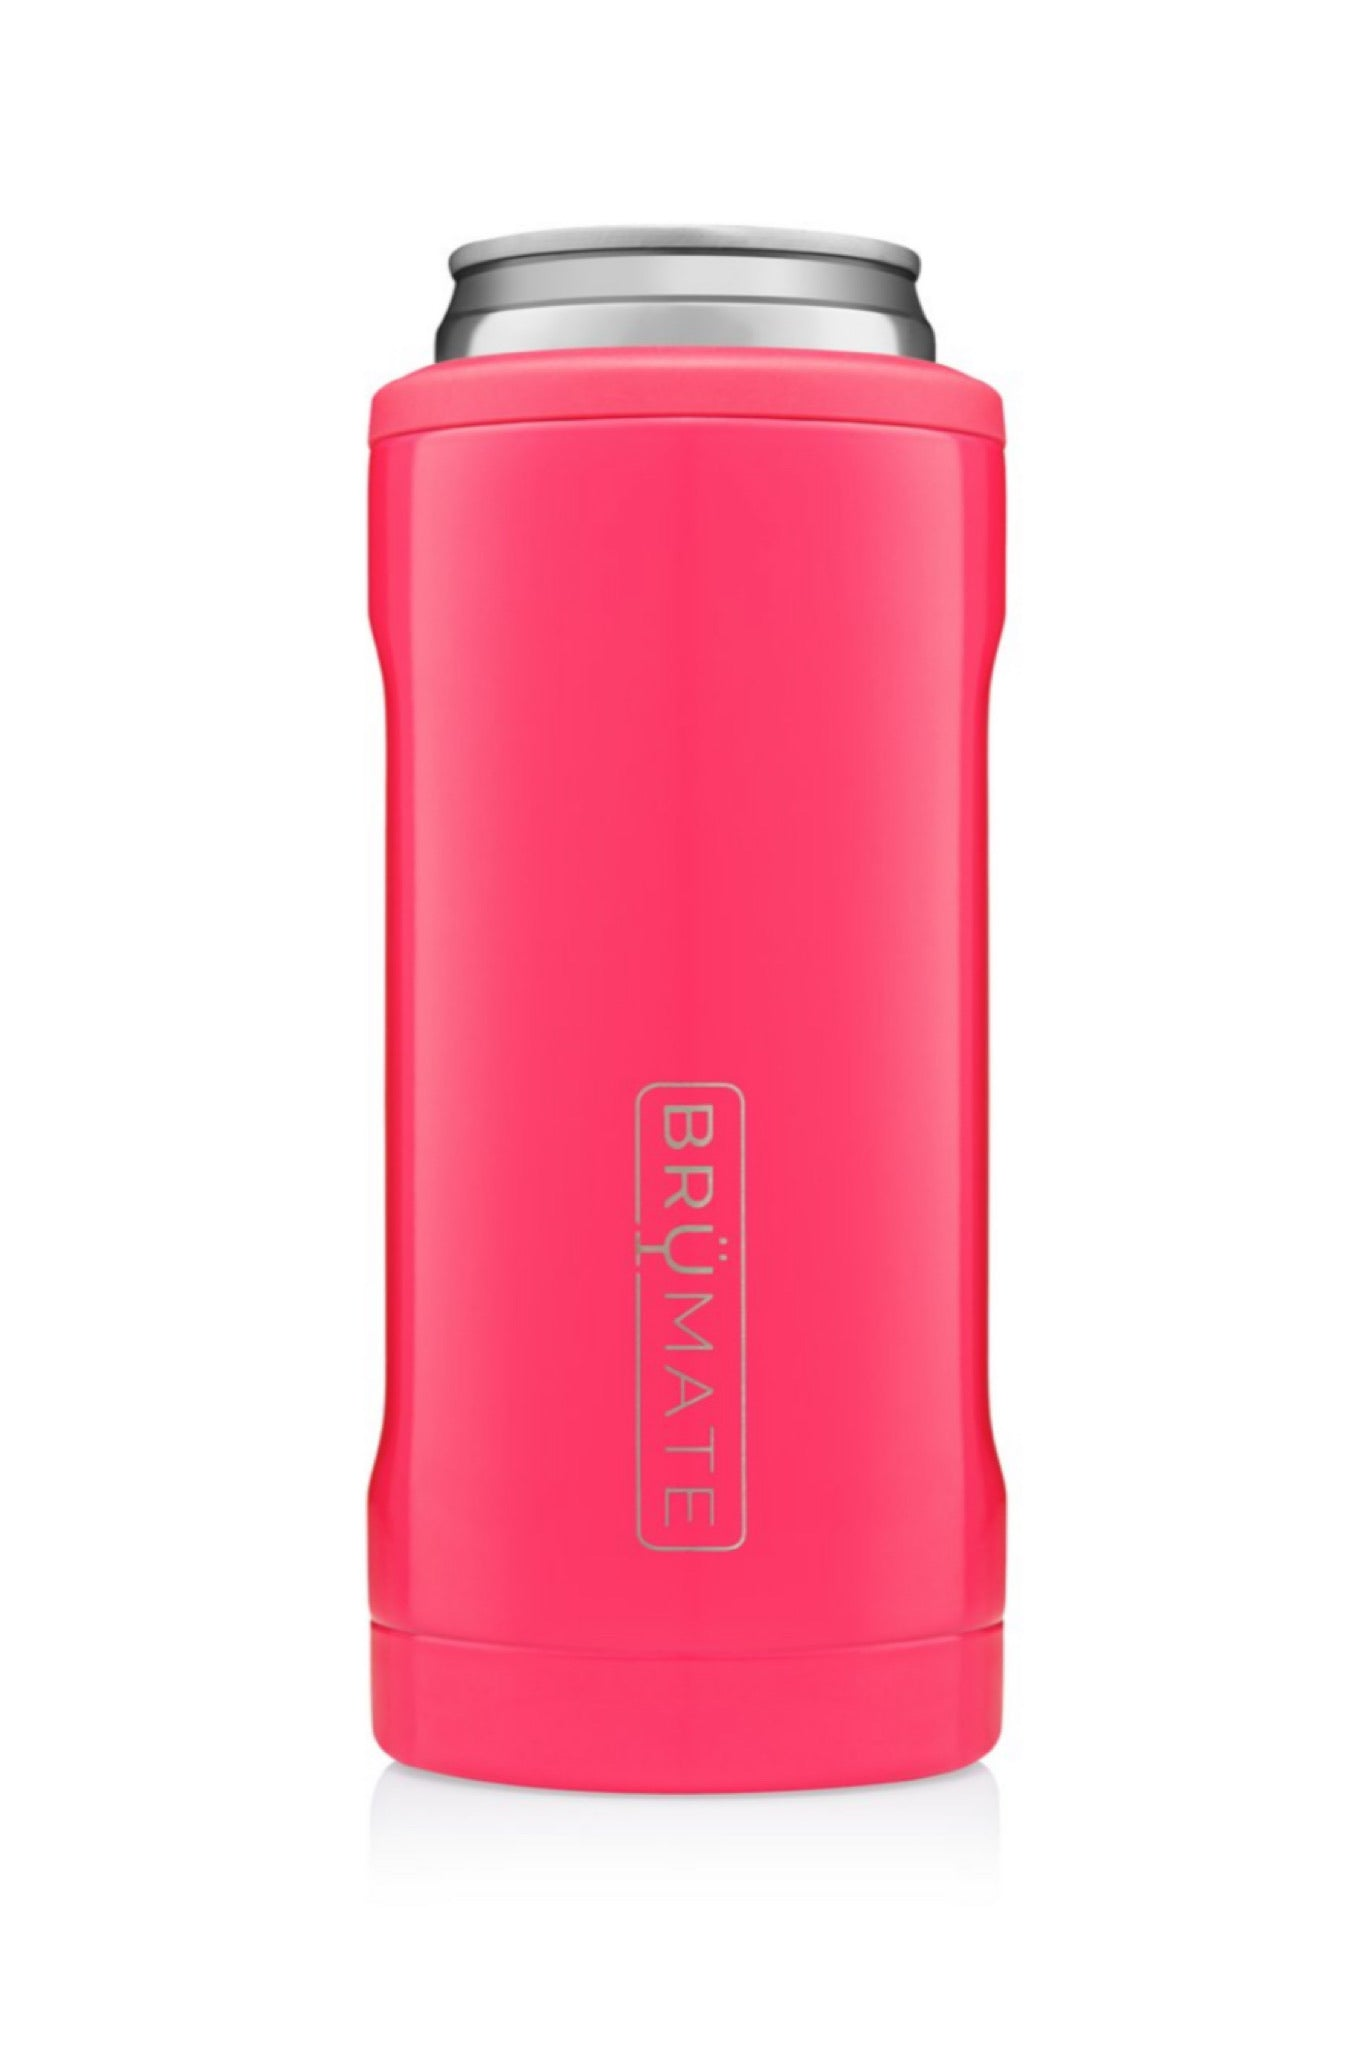 Neon Pink Hopsulator Slim Can Cooler by BrüMate